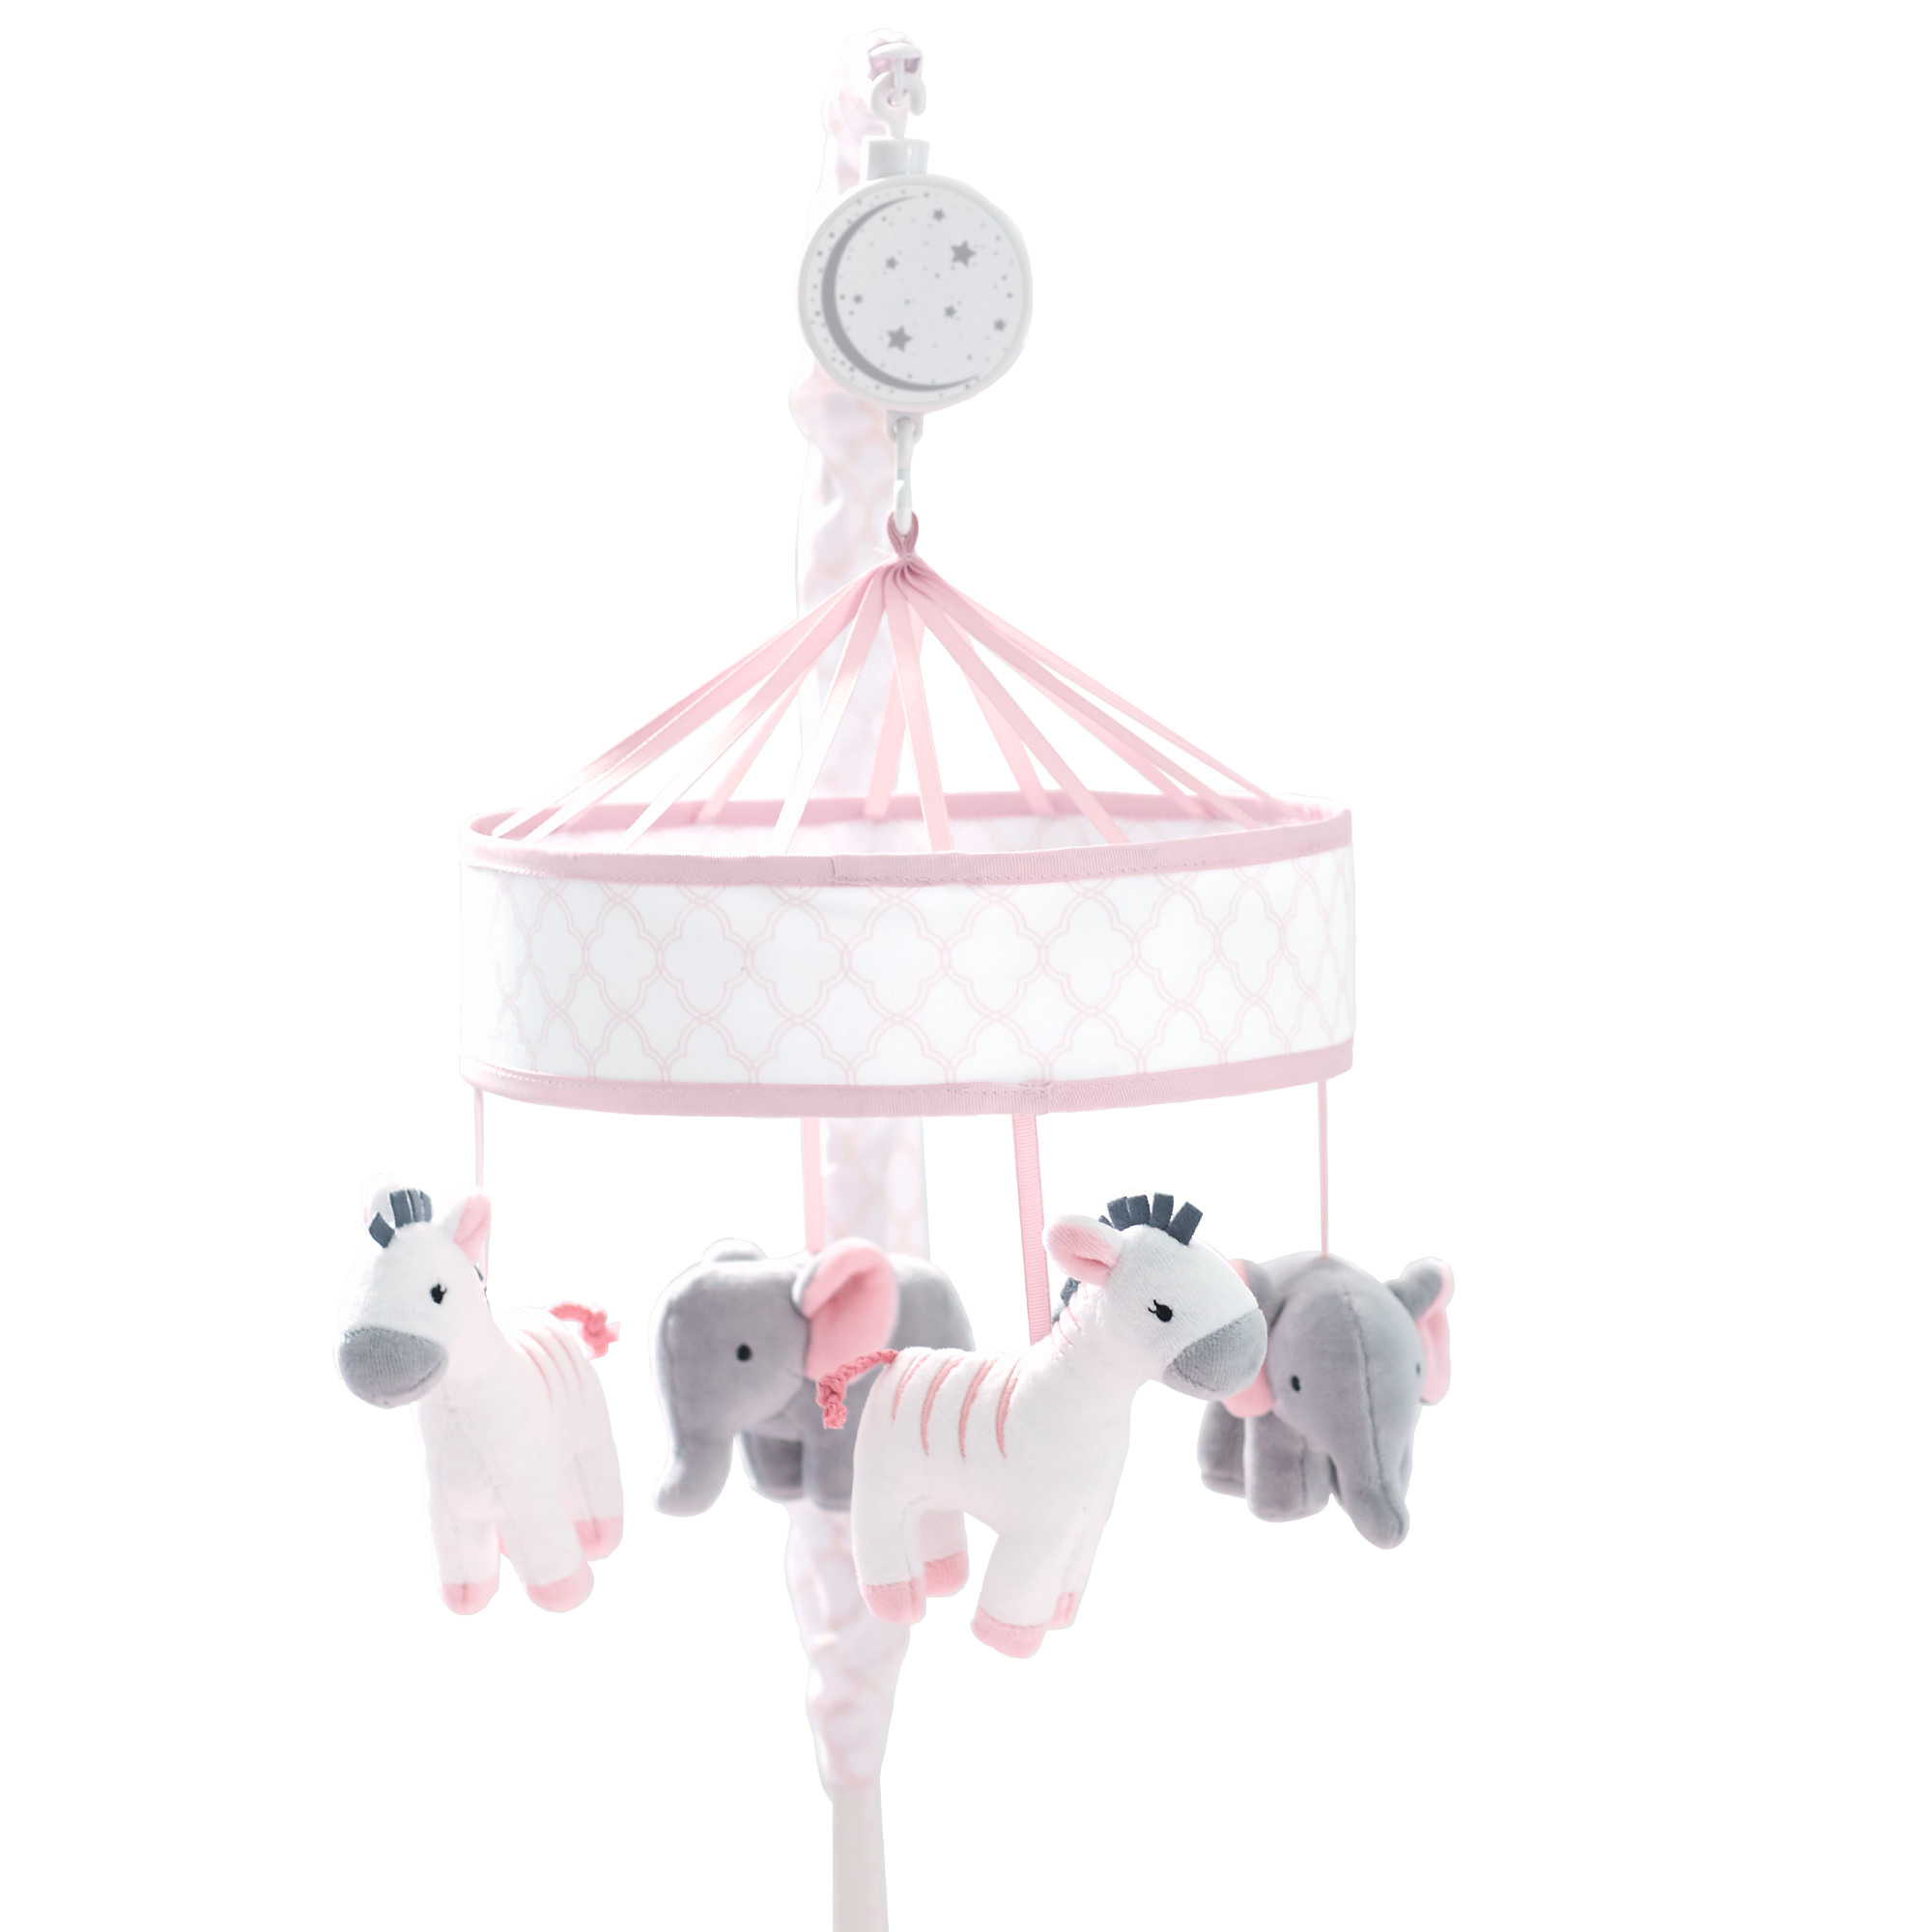 Just Born Dream Musical Mobile, Pink Grey White by Just Born